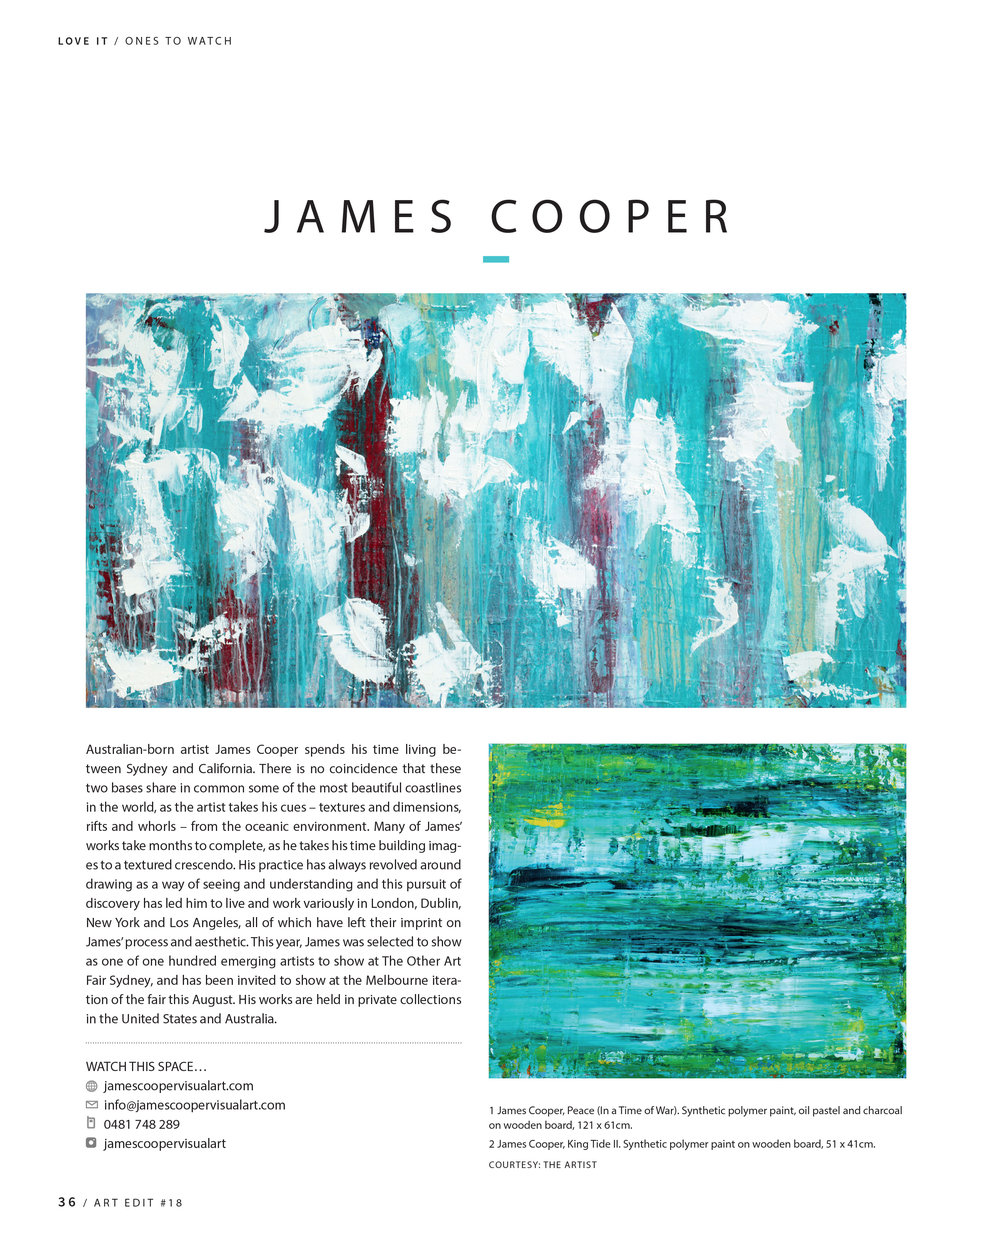 ArtEdit-Magazine-Ones-To-Watch-James-Cooper-Artist.jpg